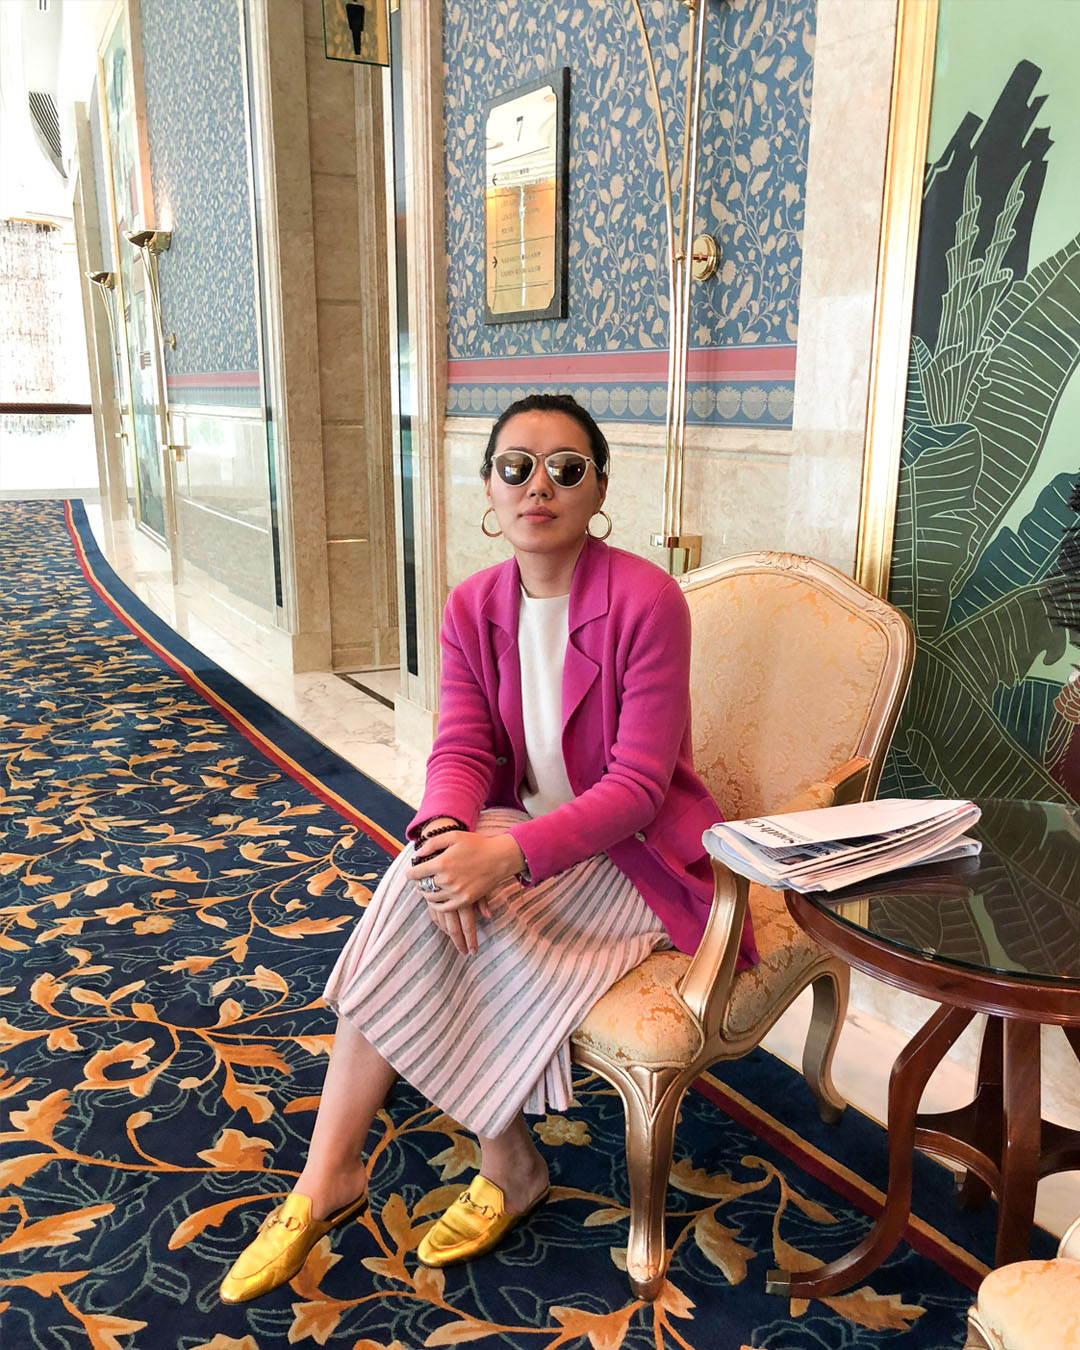 Mandkhai wearing SS18 blazer and SS17 skirt